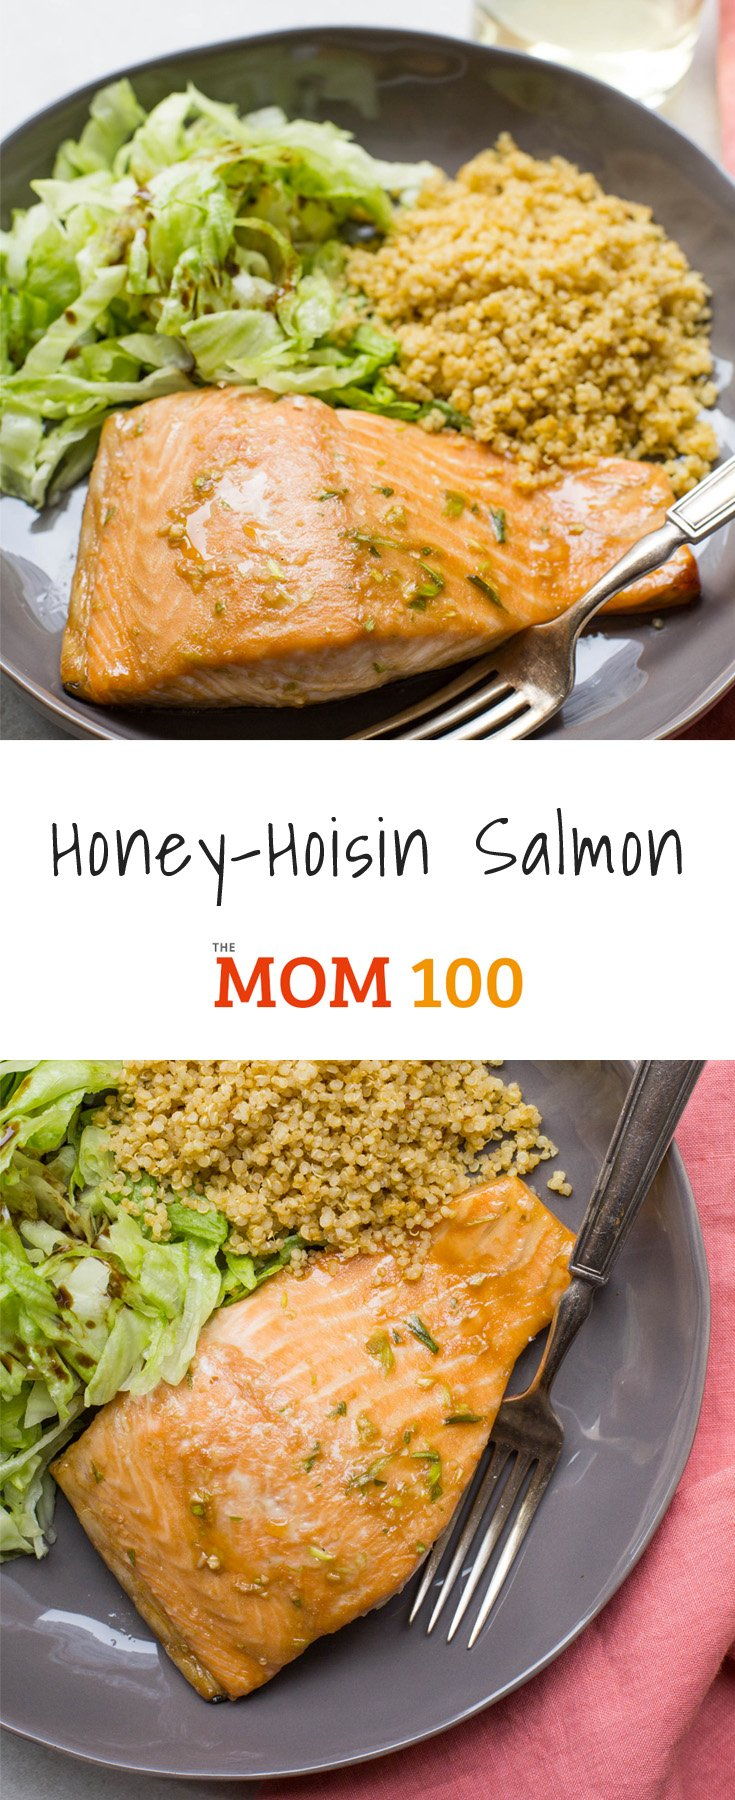 When in doubt about how to get kids to embrace fish, head over to the Asian part of your pantry and make this Honey-Hoisin Salmon.